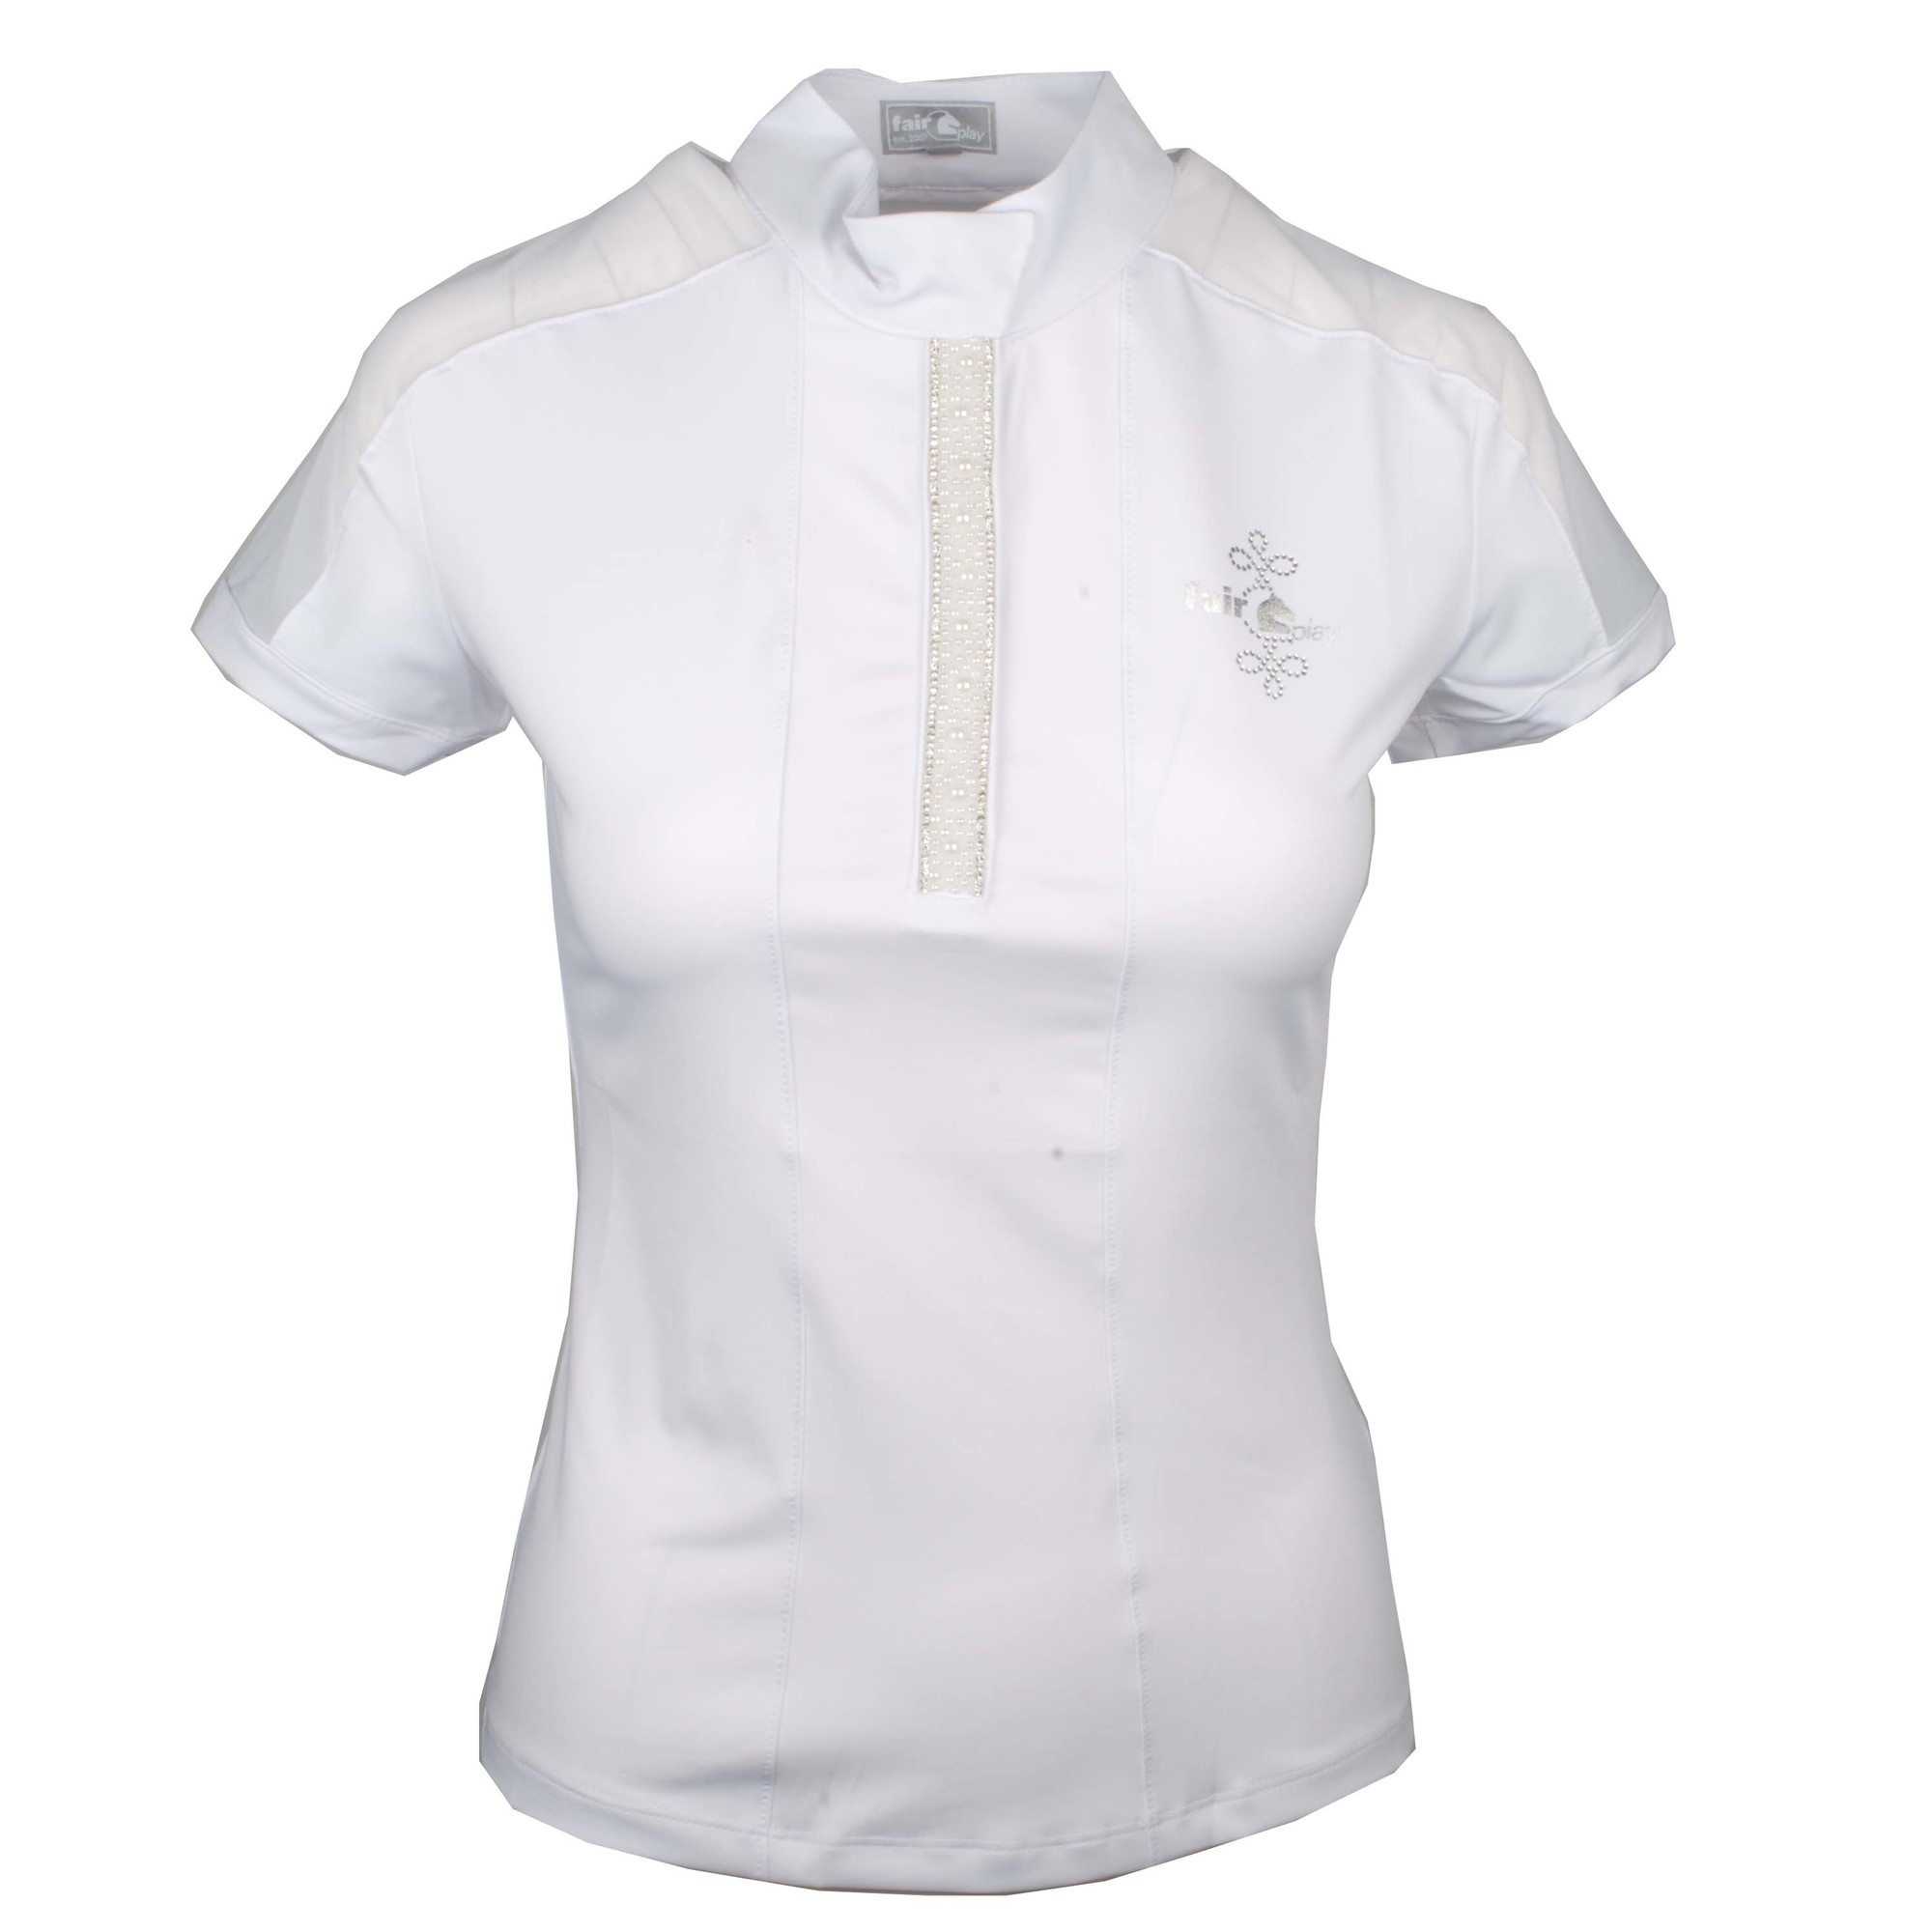 Fair Play Claire Pearl wedstrijdshirt wit maat:36